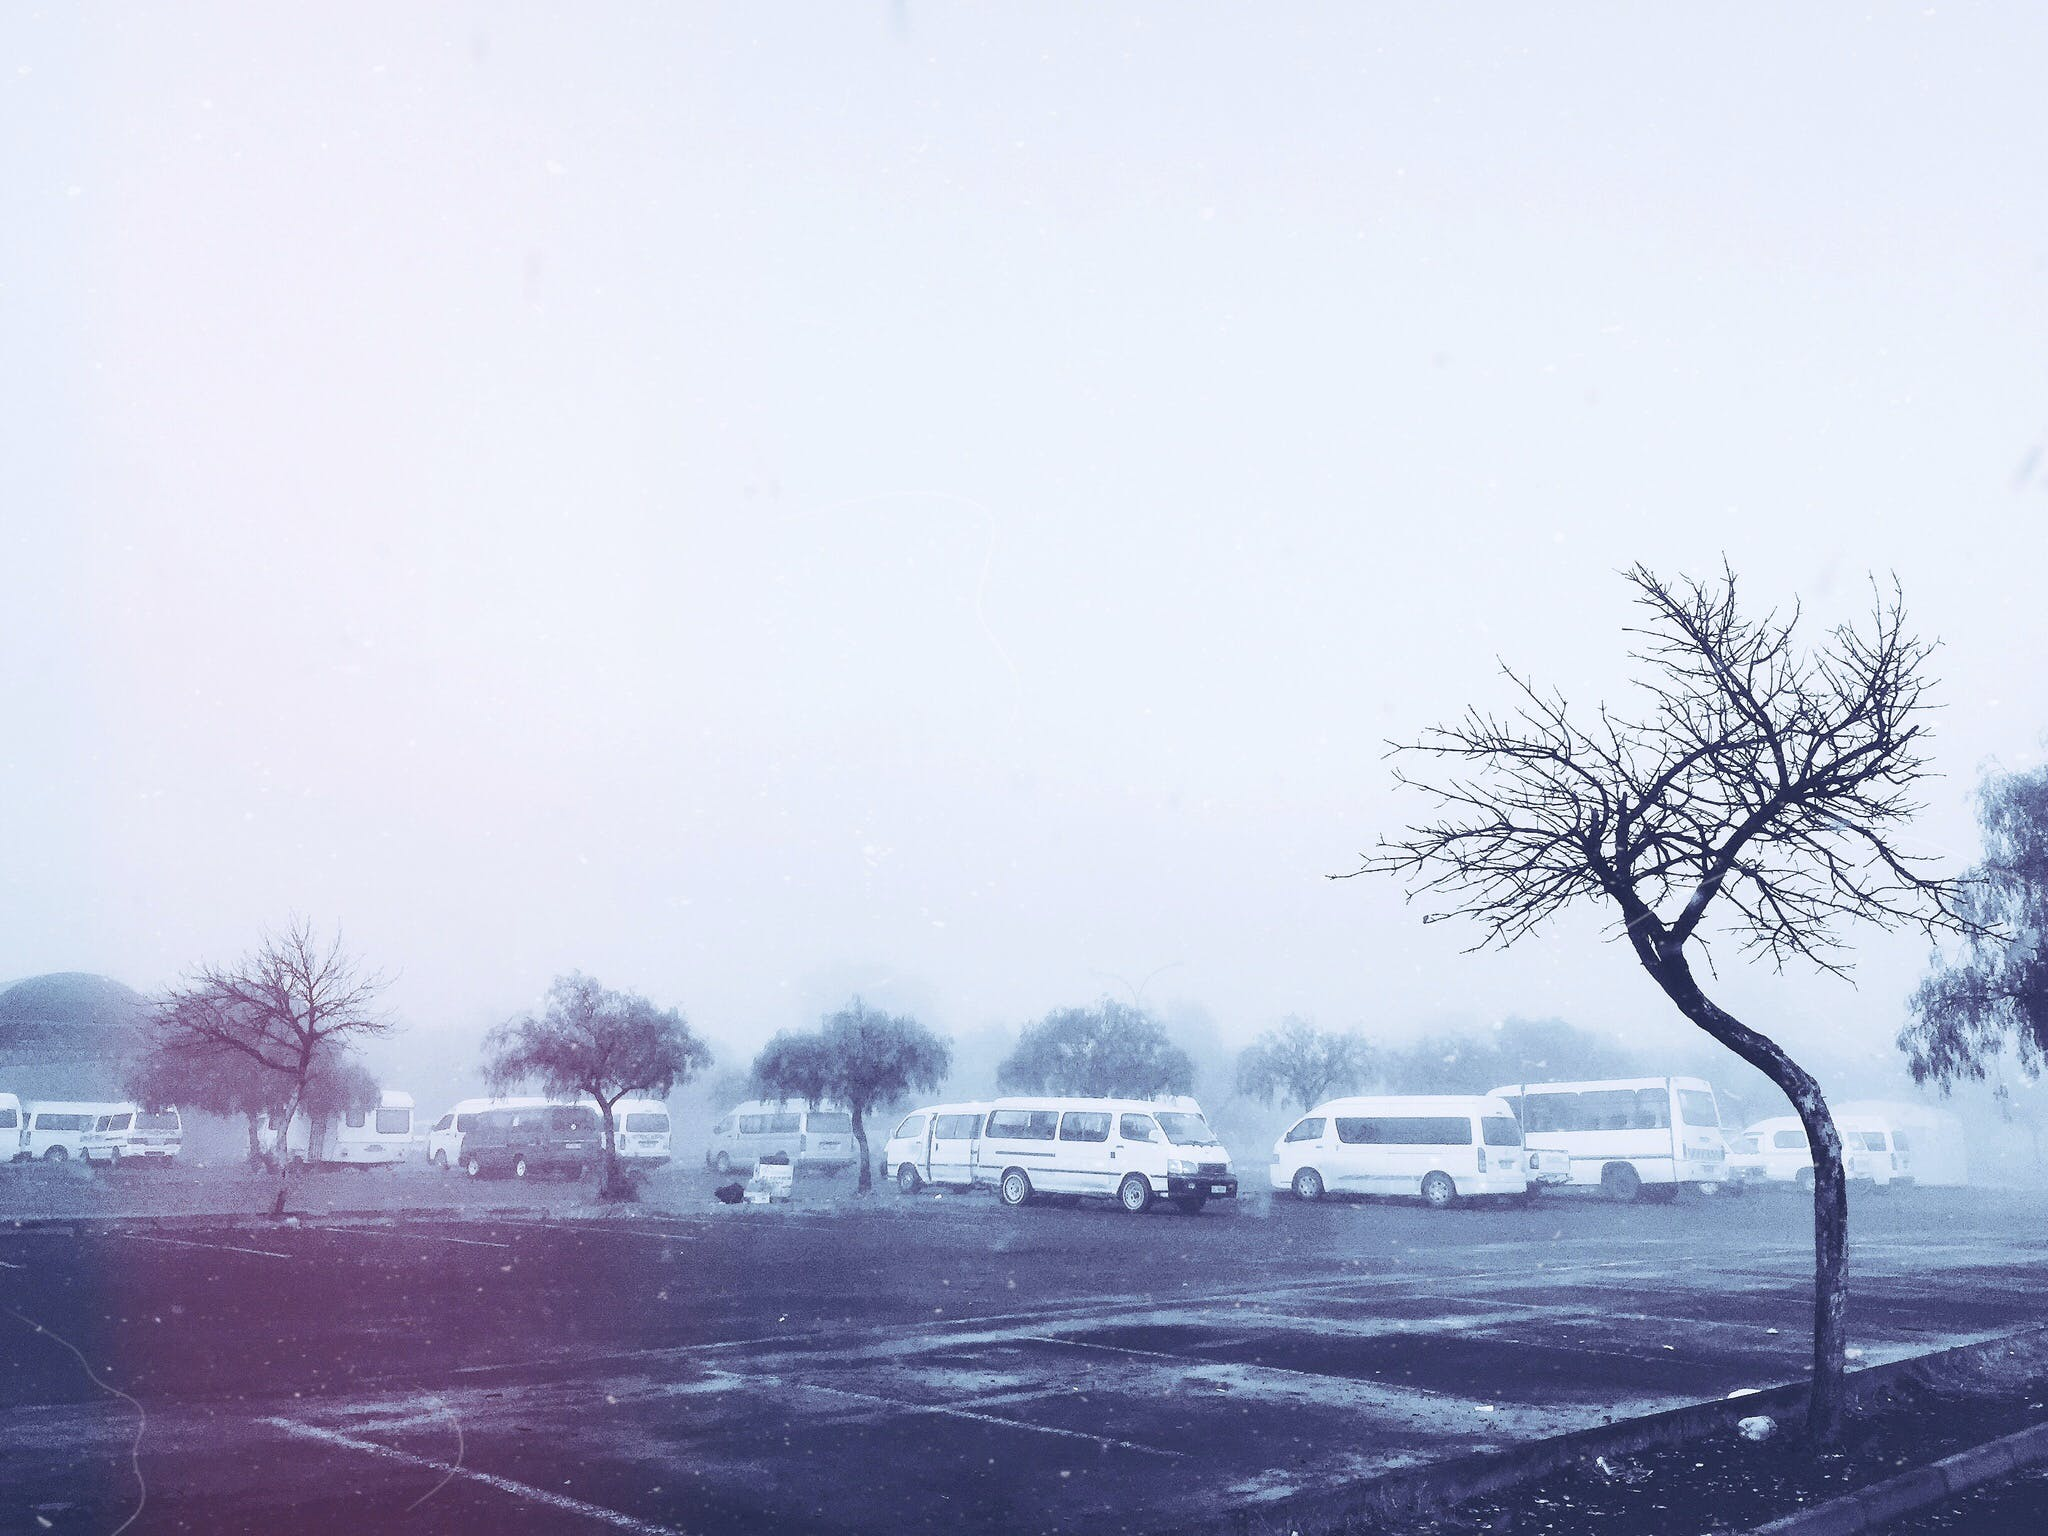 Free stock photo of South African Taxi rank on a cold morning